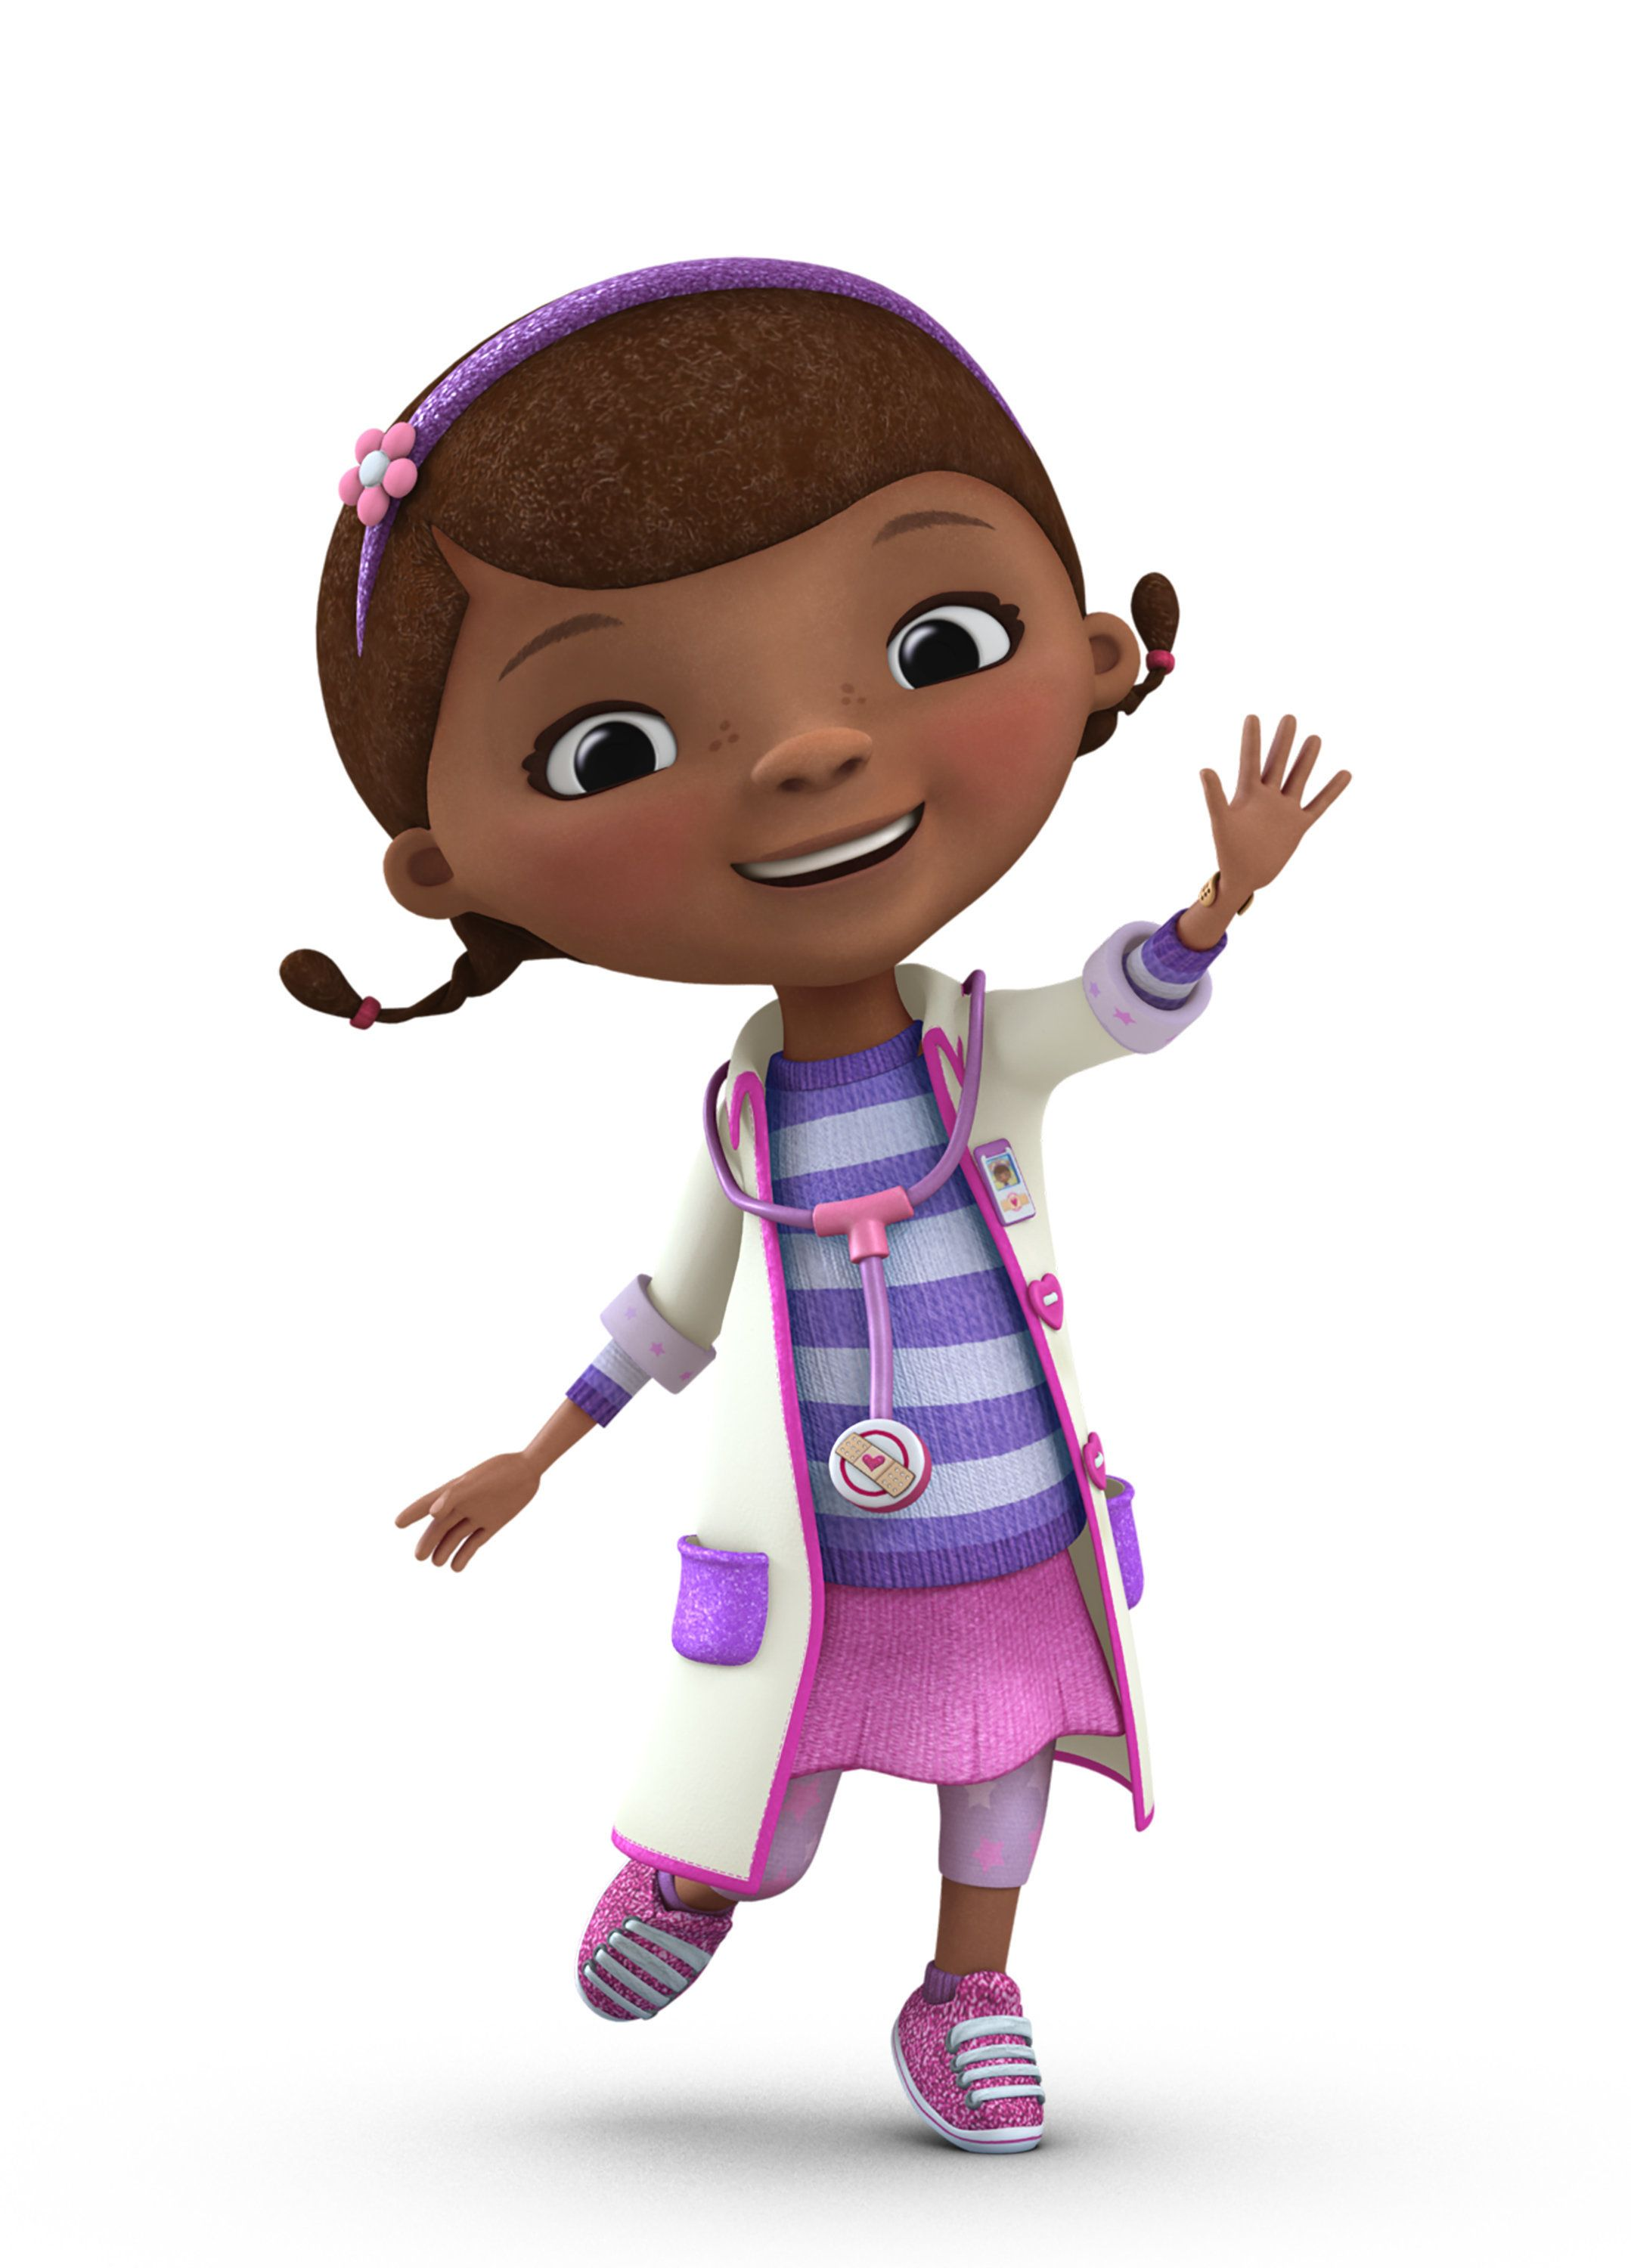 """DOC MCSTUFFINS - Disney Junior's Peabody Award-winning """"Doc McStuffins"""" is an imaginative animated series about a six-year-old girl who communicates with and heals stuffed animals and broken toys out of her backyard playhouse clinic and in the magical McStuffins Toy Hospital. (Disney Junior)"""